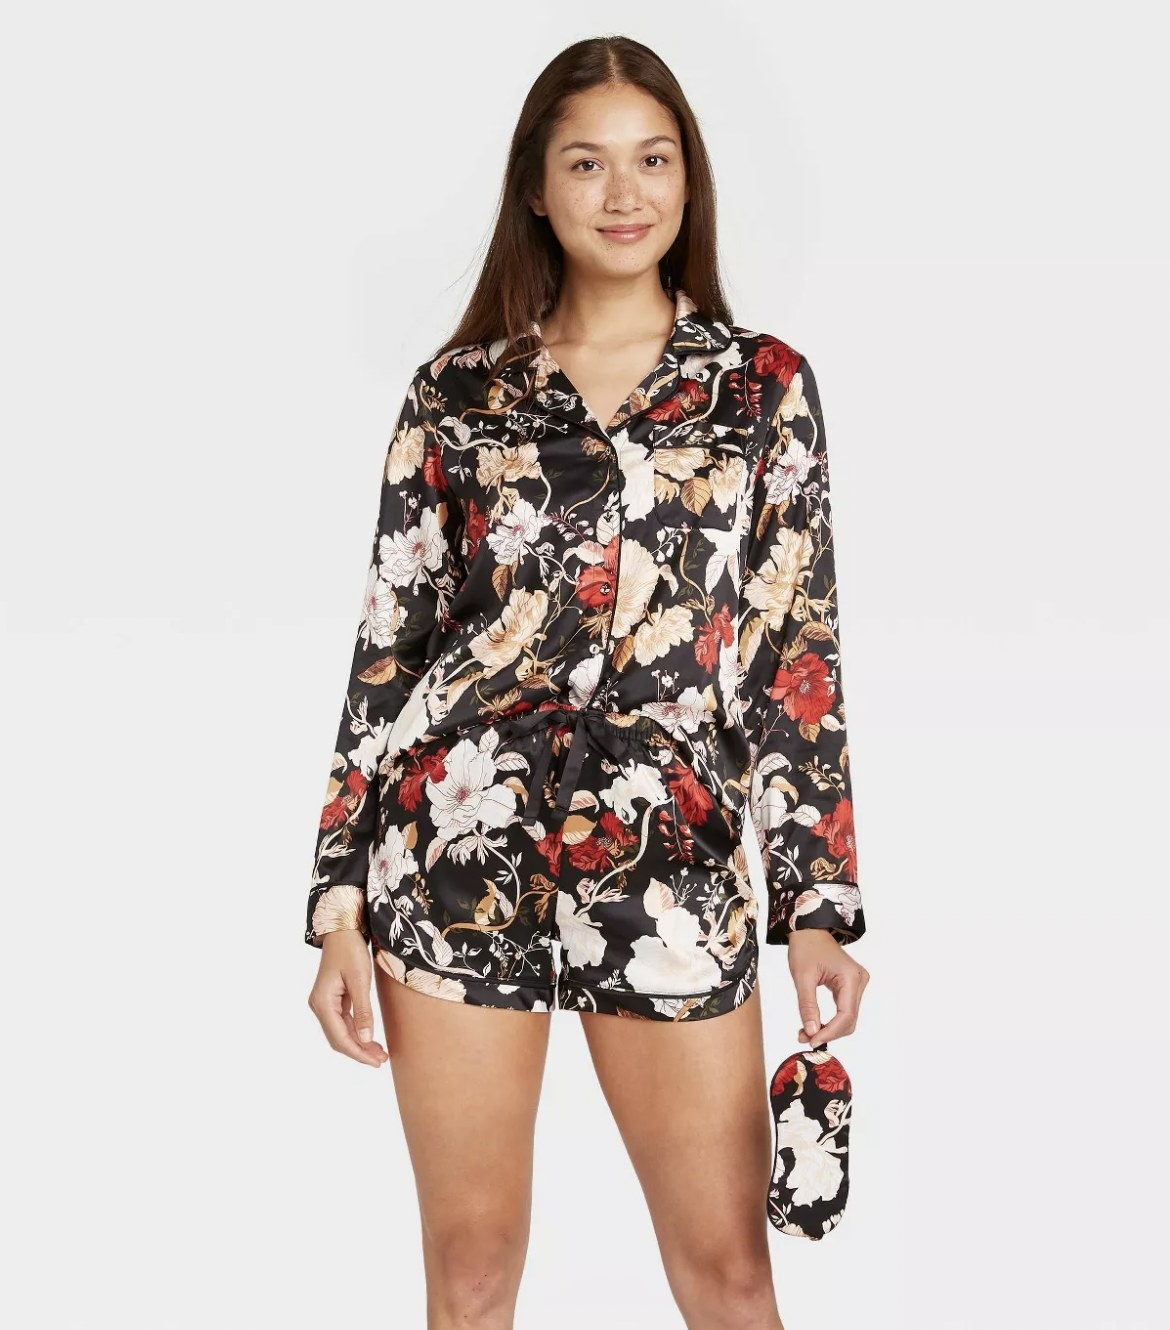 A model wearing a black, red, and white floral print pajama short set